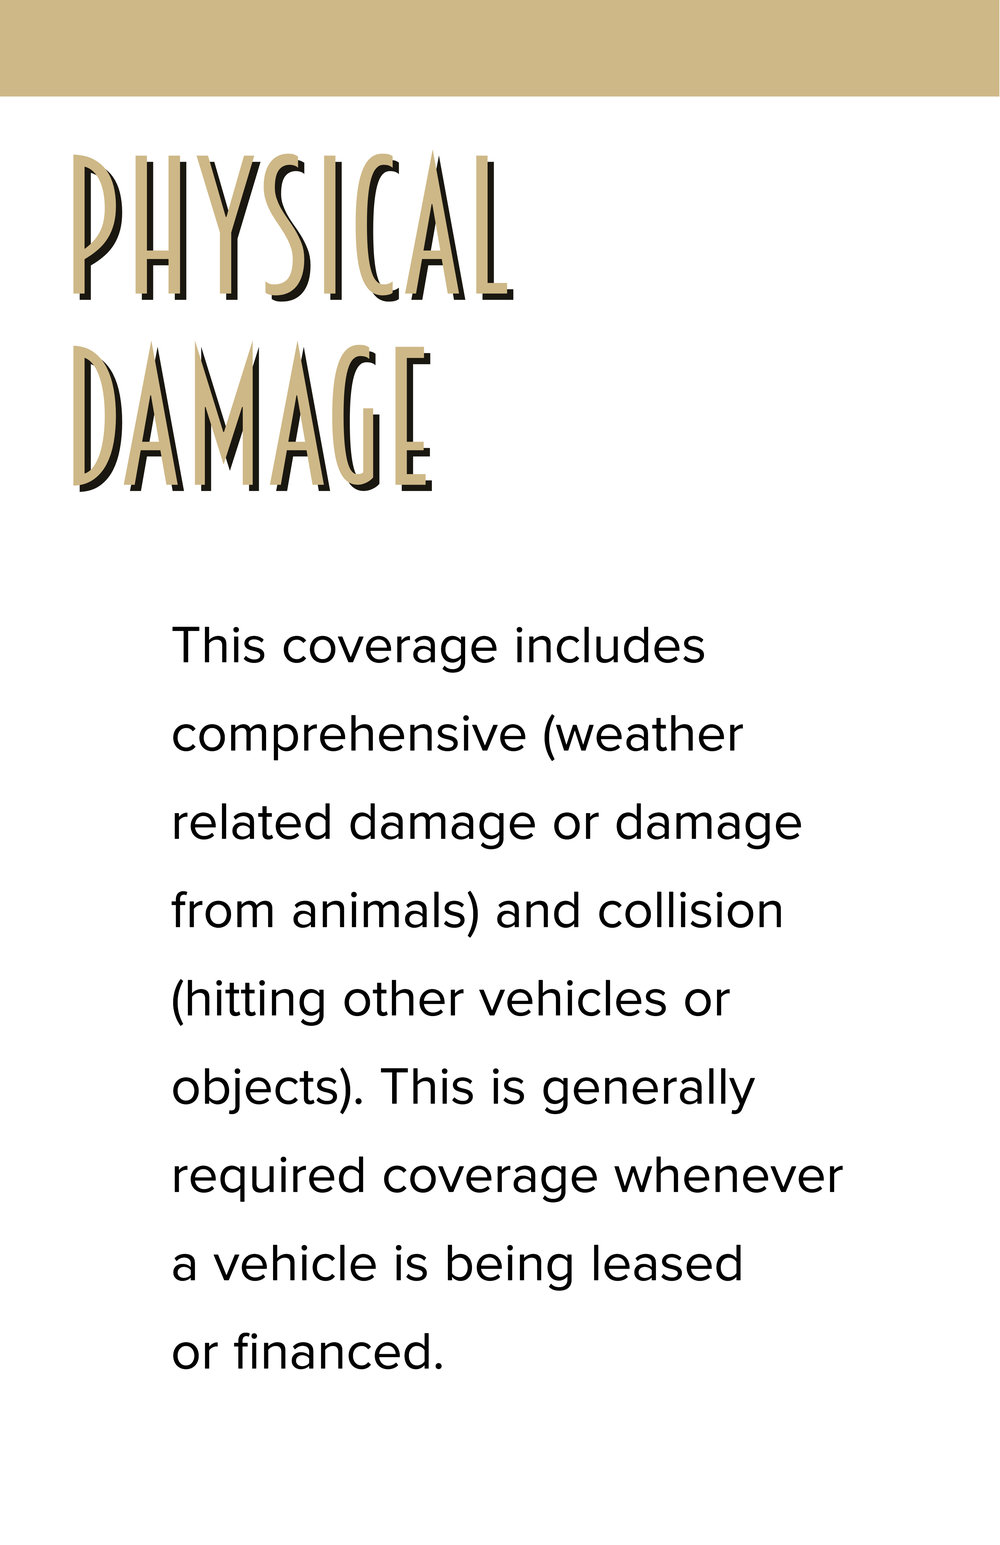 Physical Damage(1).jpg